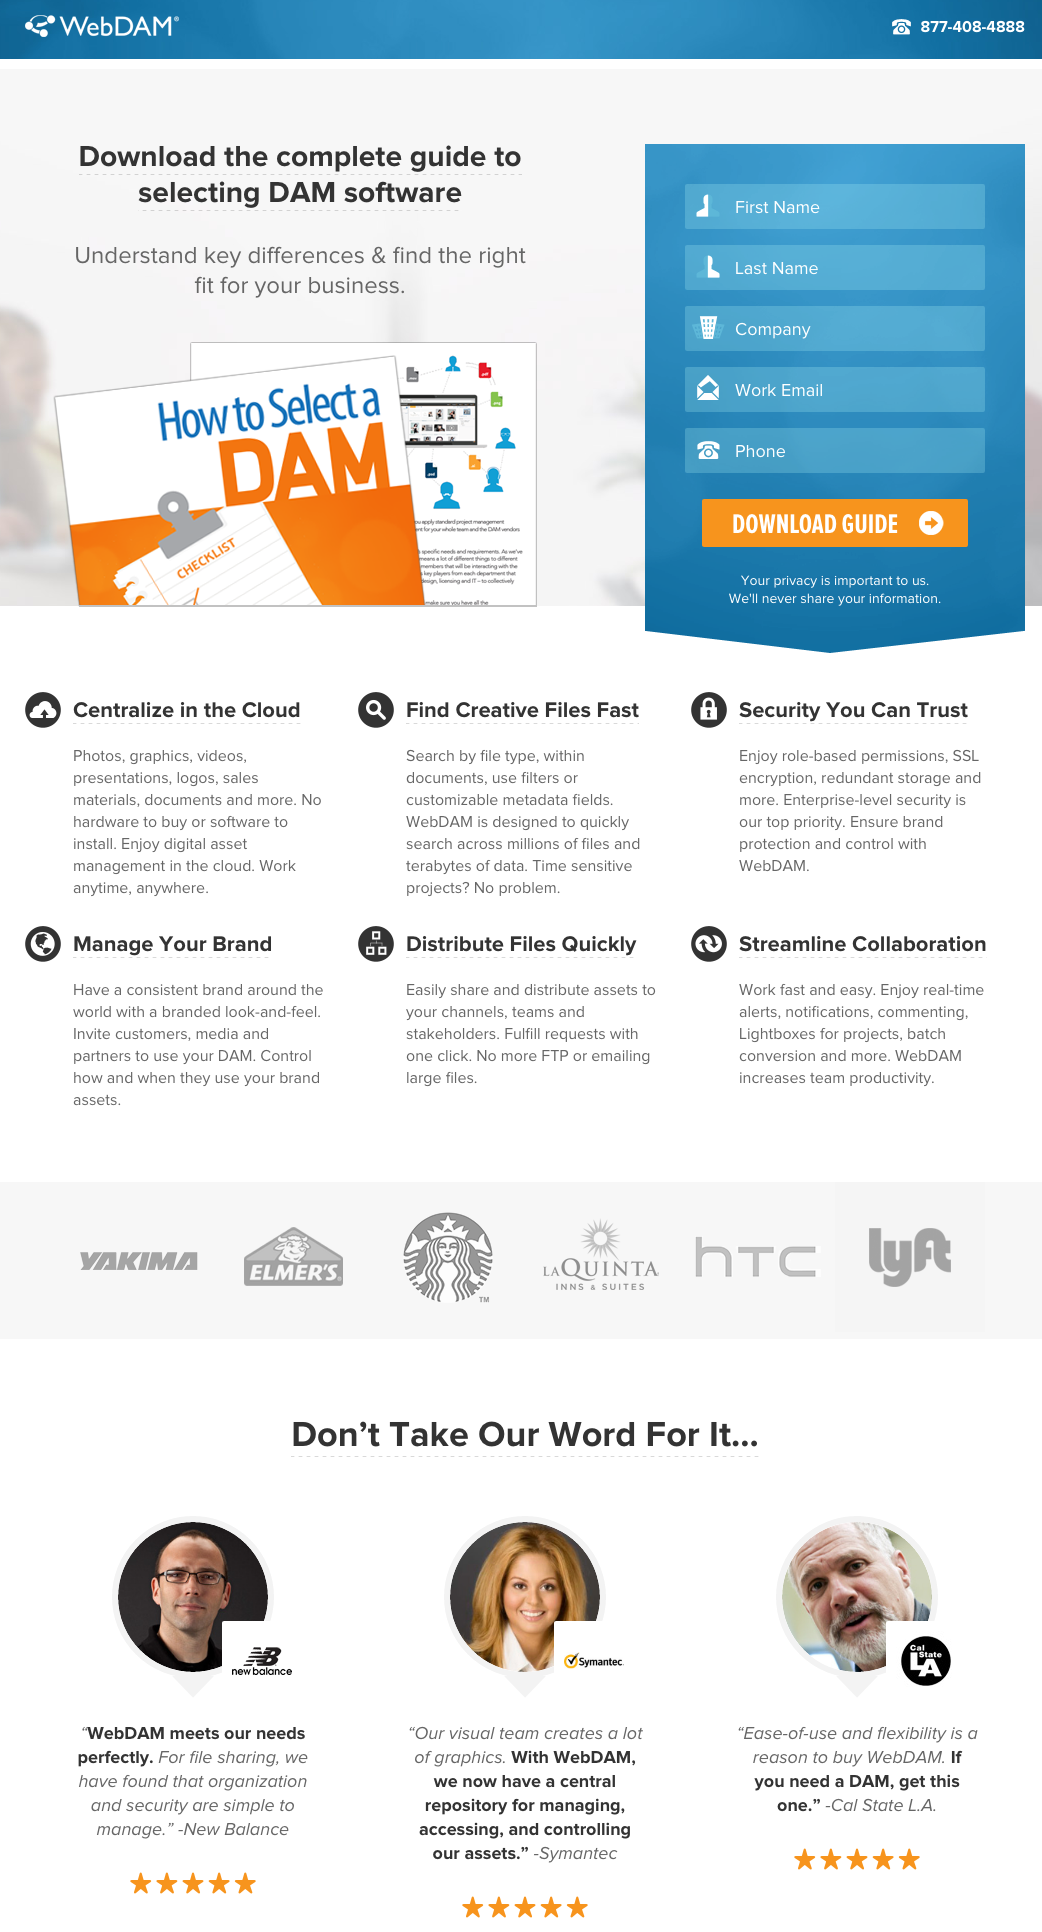 webdam-landing-page-example.png